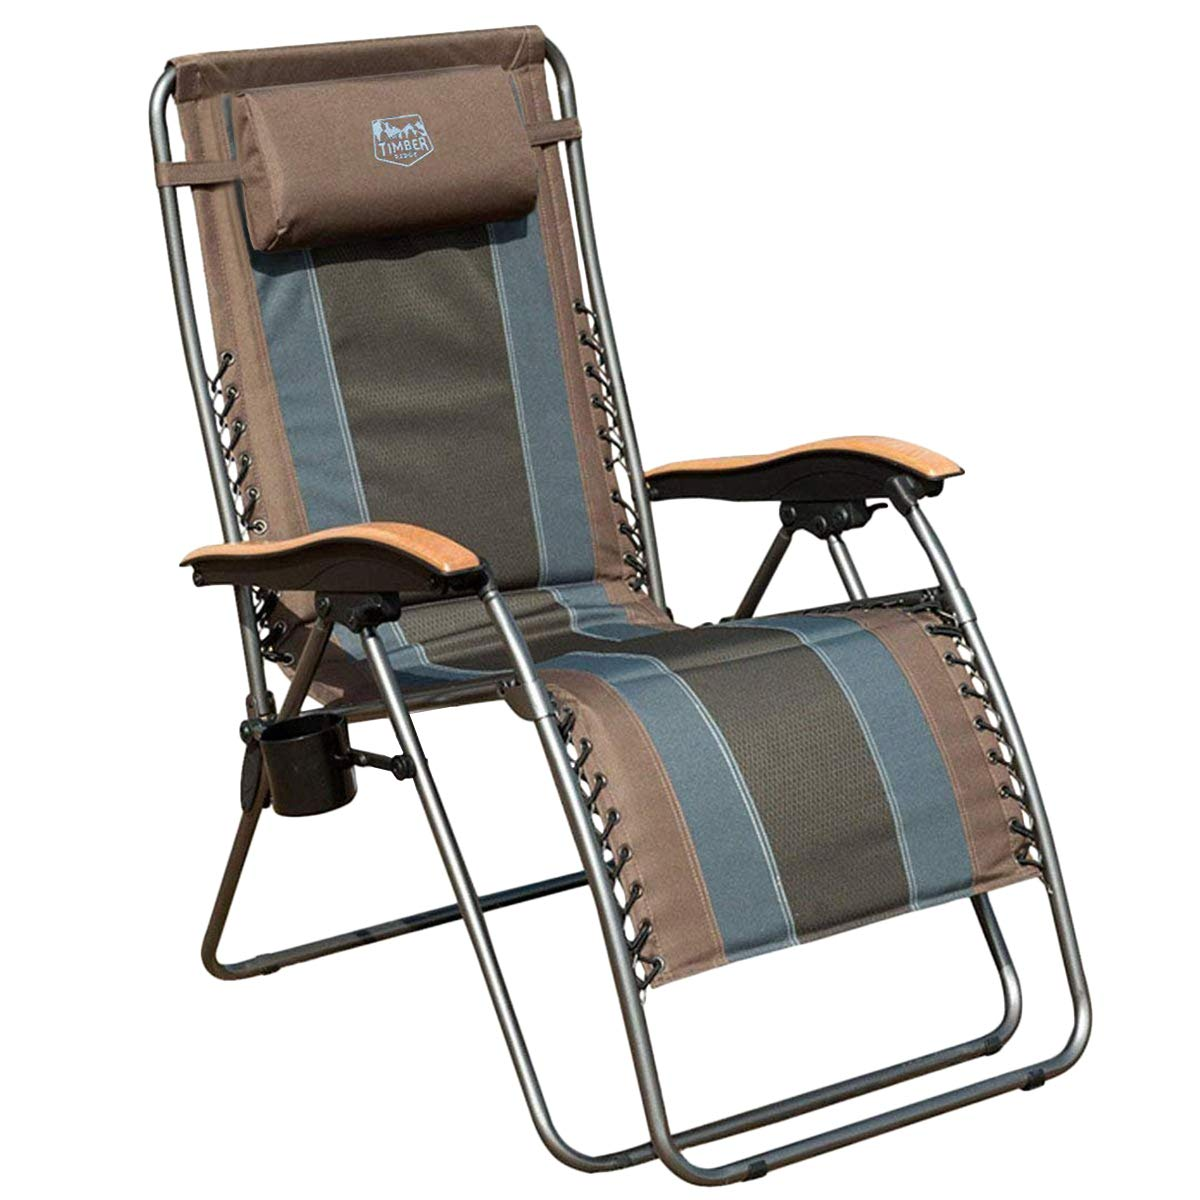 Top 10 Best Camping Chair For Bad Back 2021 Reviews 3